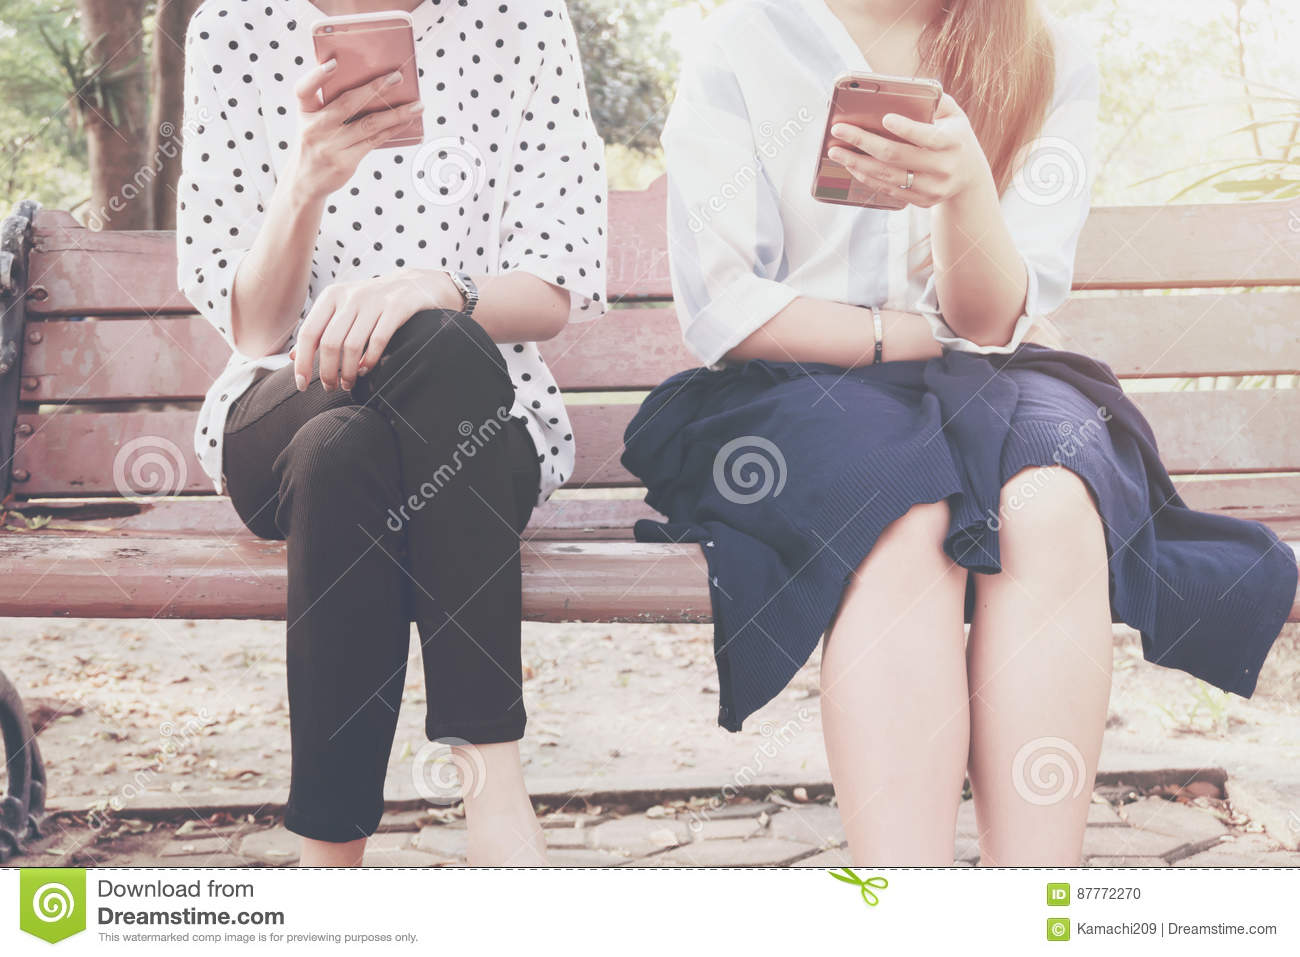 Two women in disinterest moment with smart phones in the outdoor, concept of relationship apathy and using new technology and smar